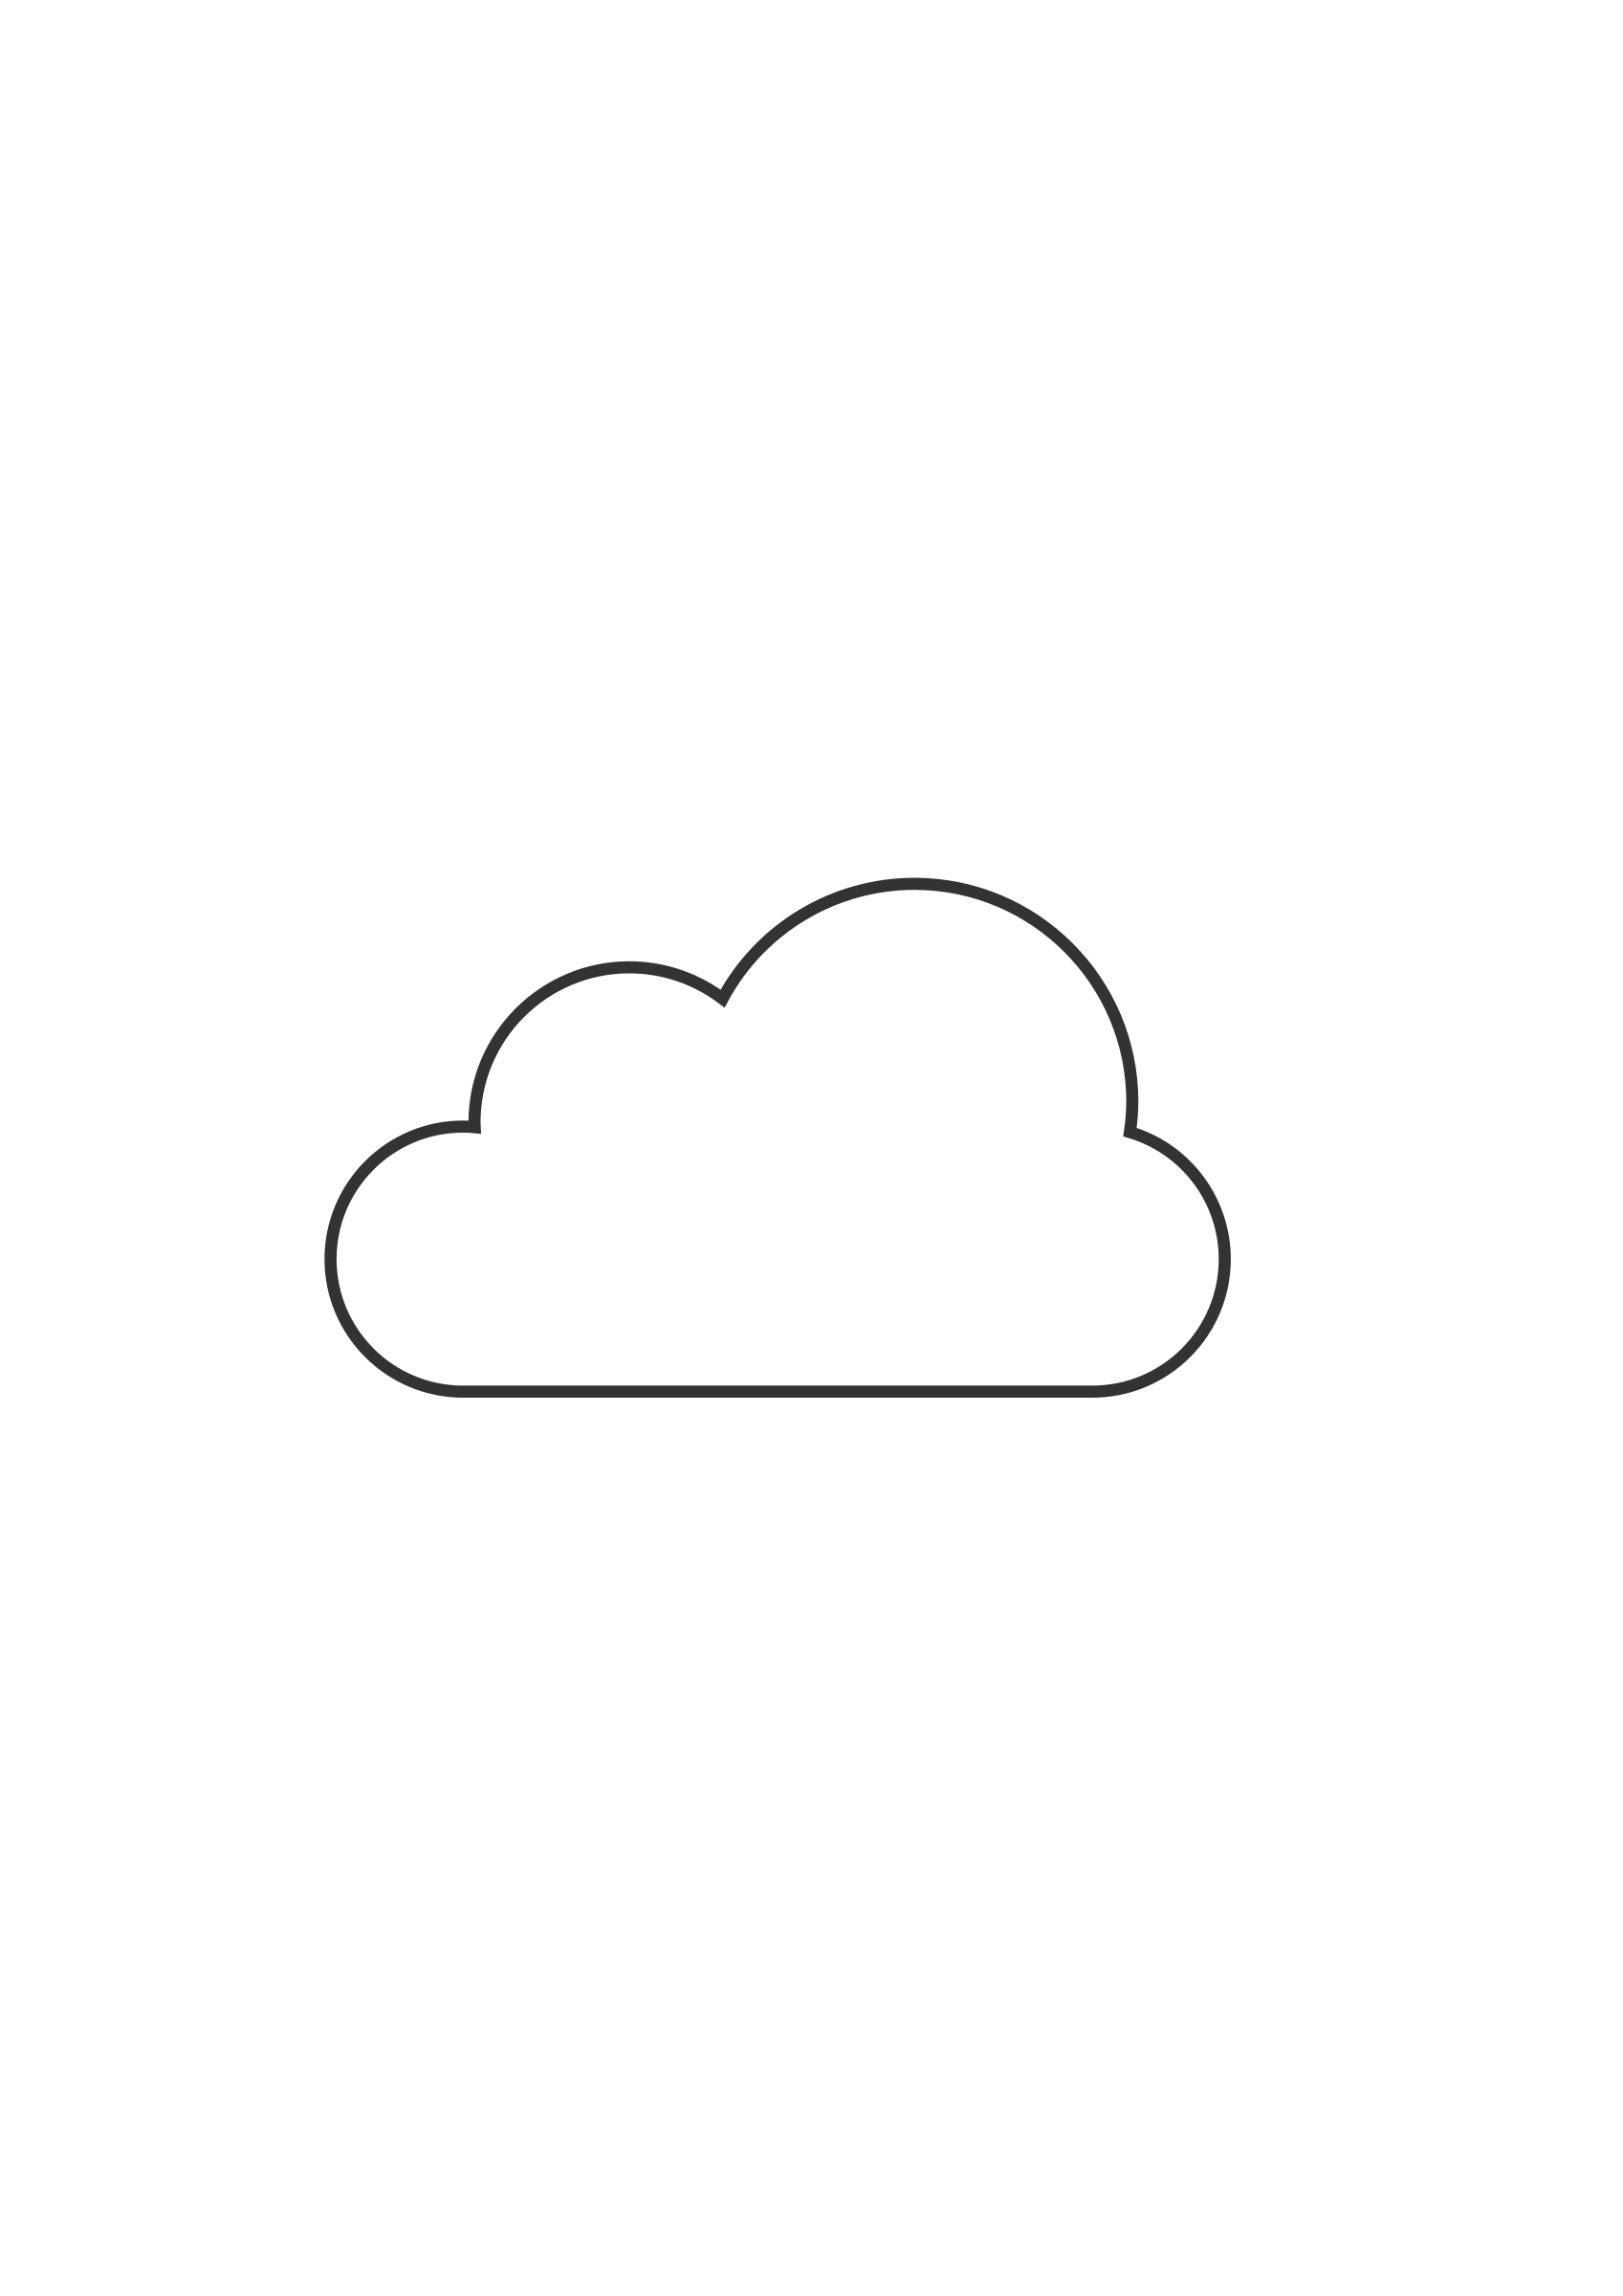 Cloud Drawing Easy : cloud, drawing, Clouds, Clipart, Simple,, Simple, Transparent, Download, WebStockReview